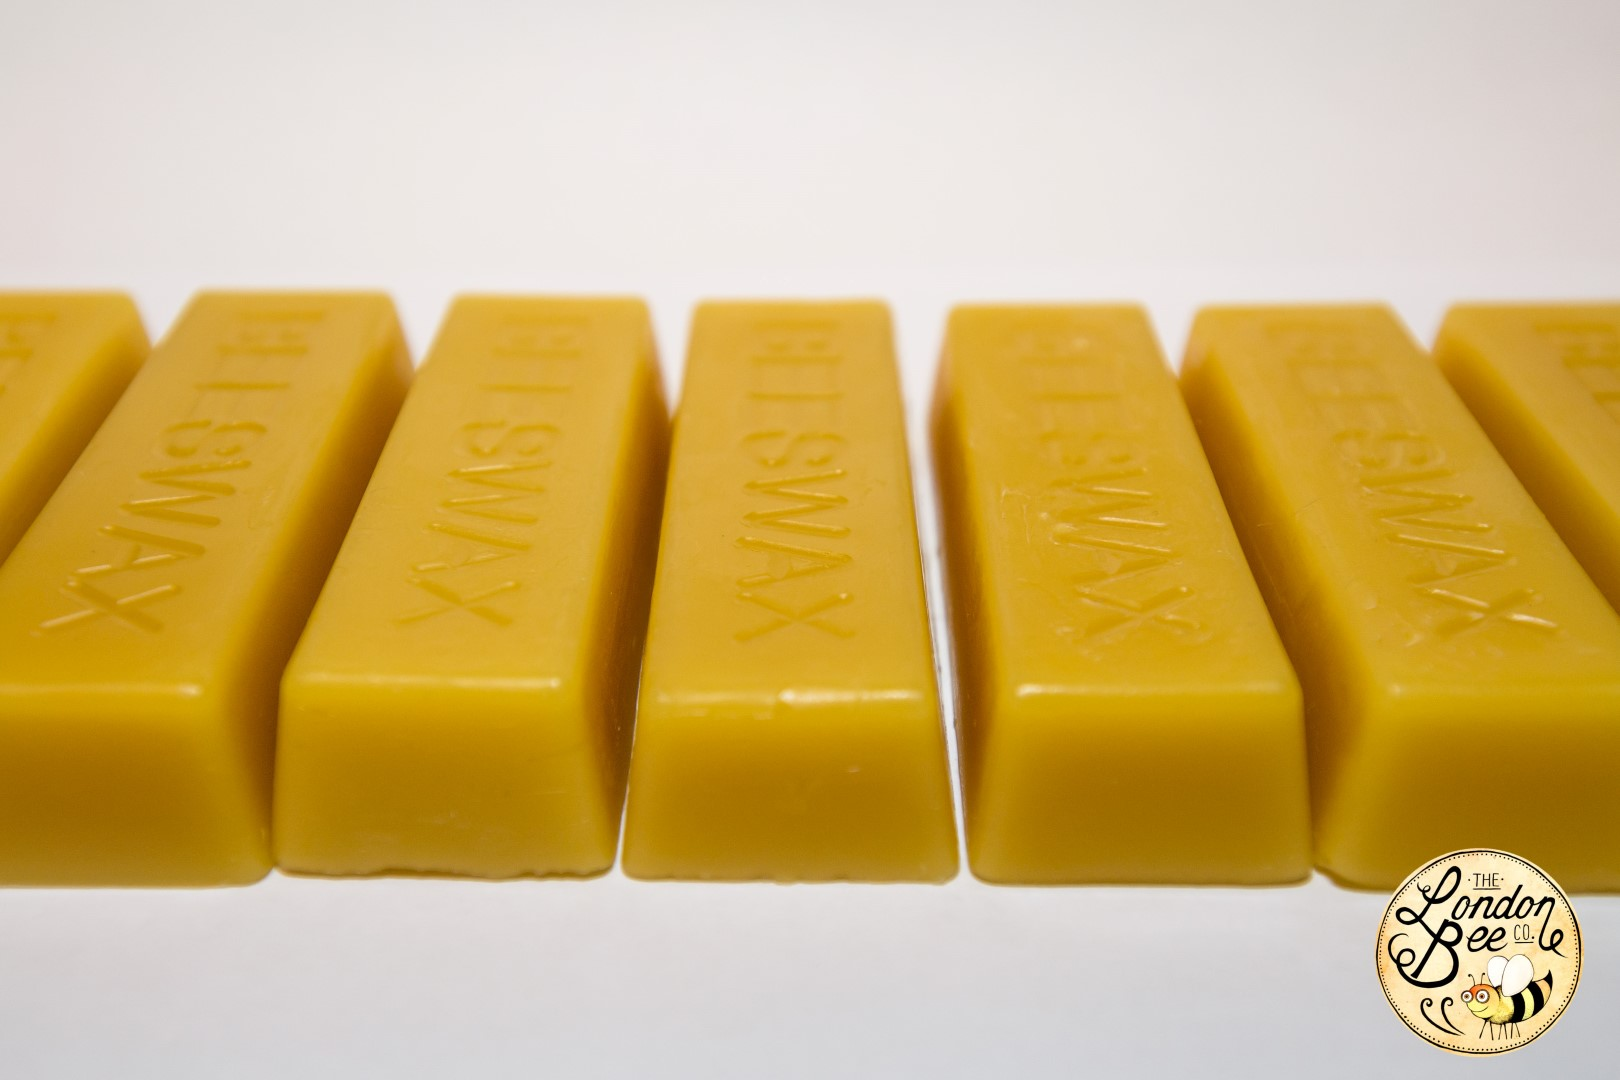 30g Beeswax Ingots The London Bee Company. Full resolution  portraiture, nominally Width 1620 Height 1080 pixels, portraiture with #824900.